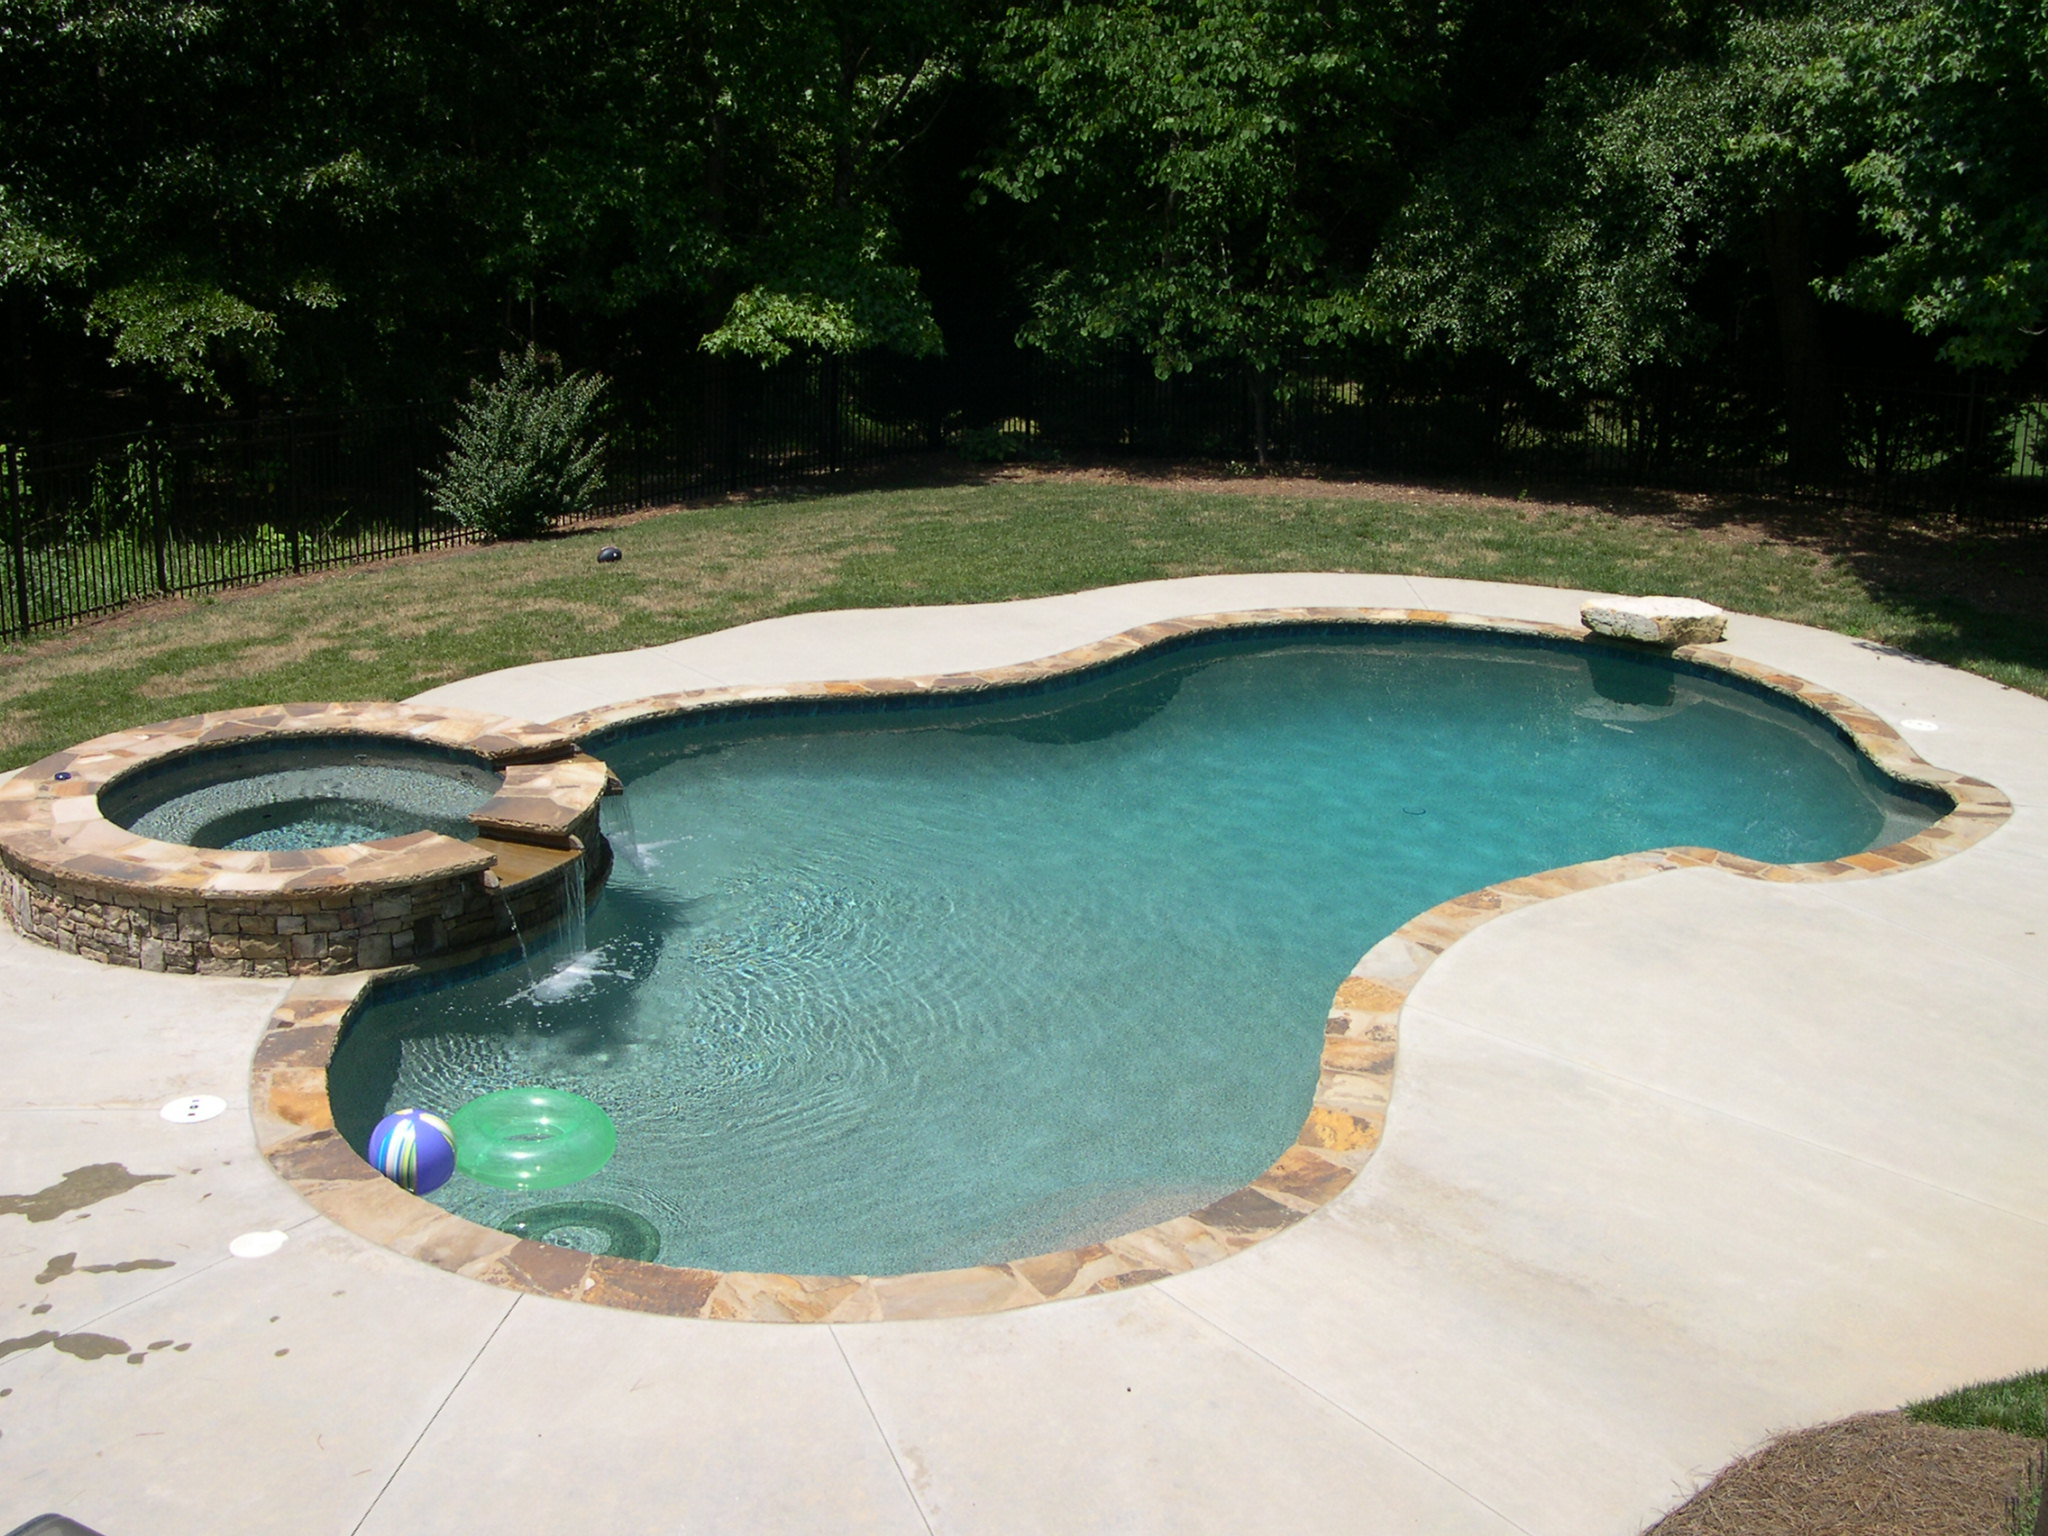 Jacuzzi Pool Hot Tub 33 Jacuzzi Pools For Your Home